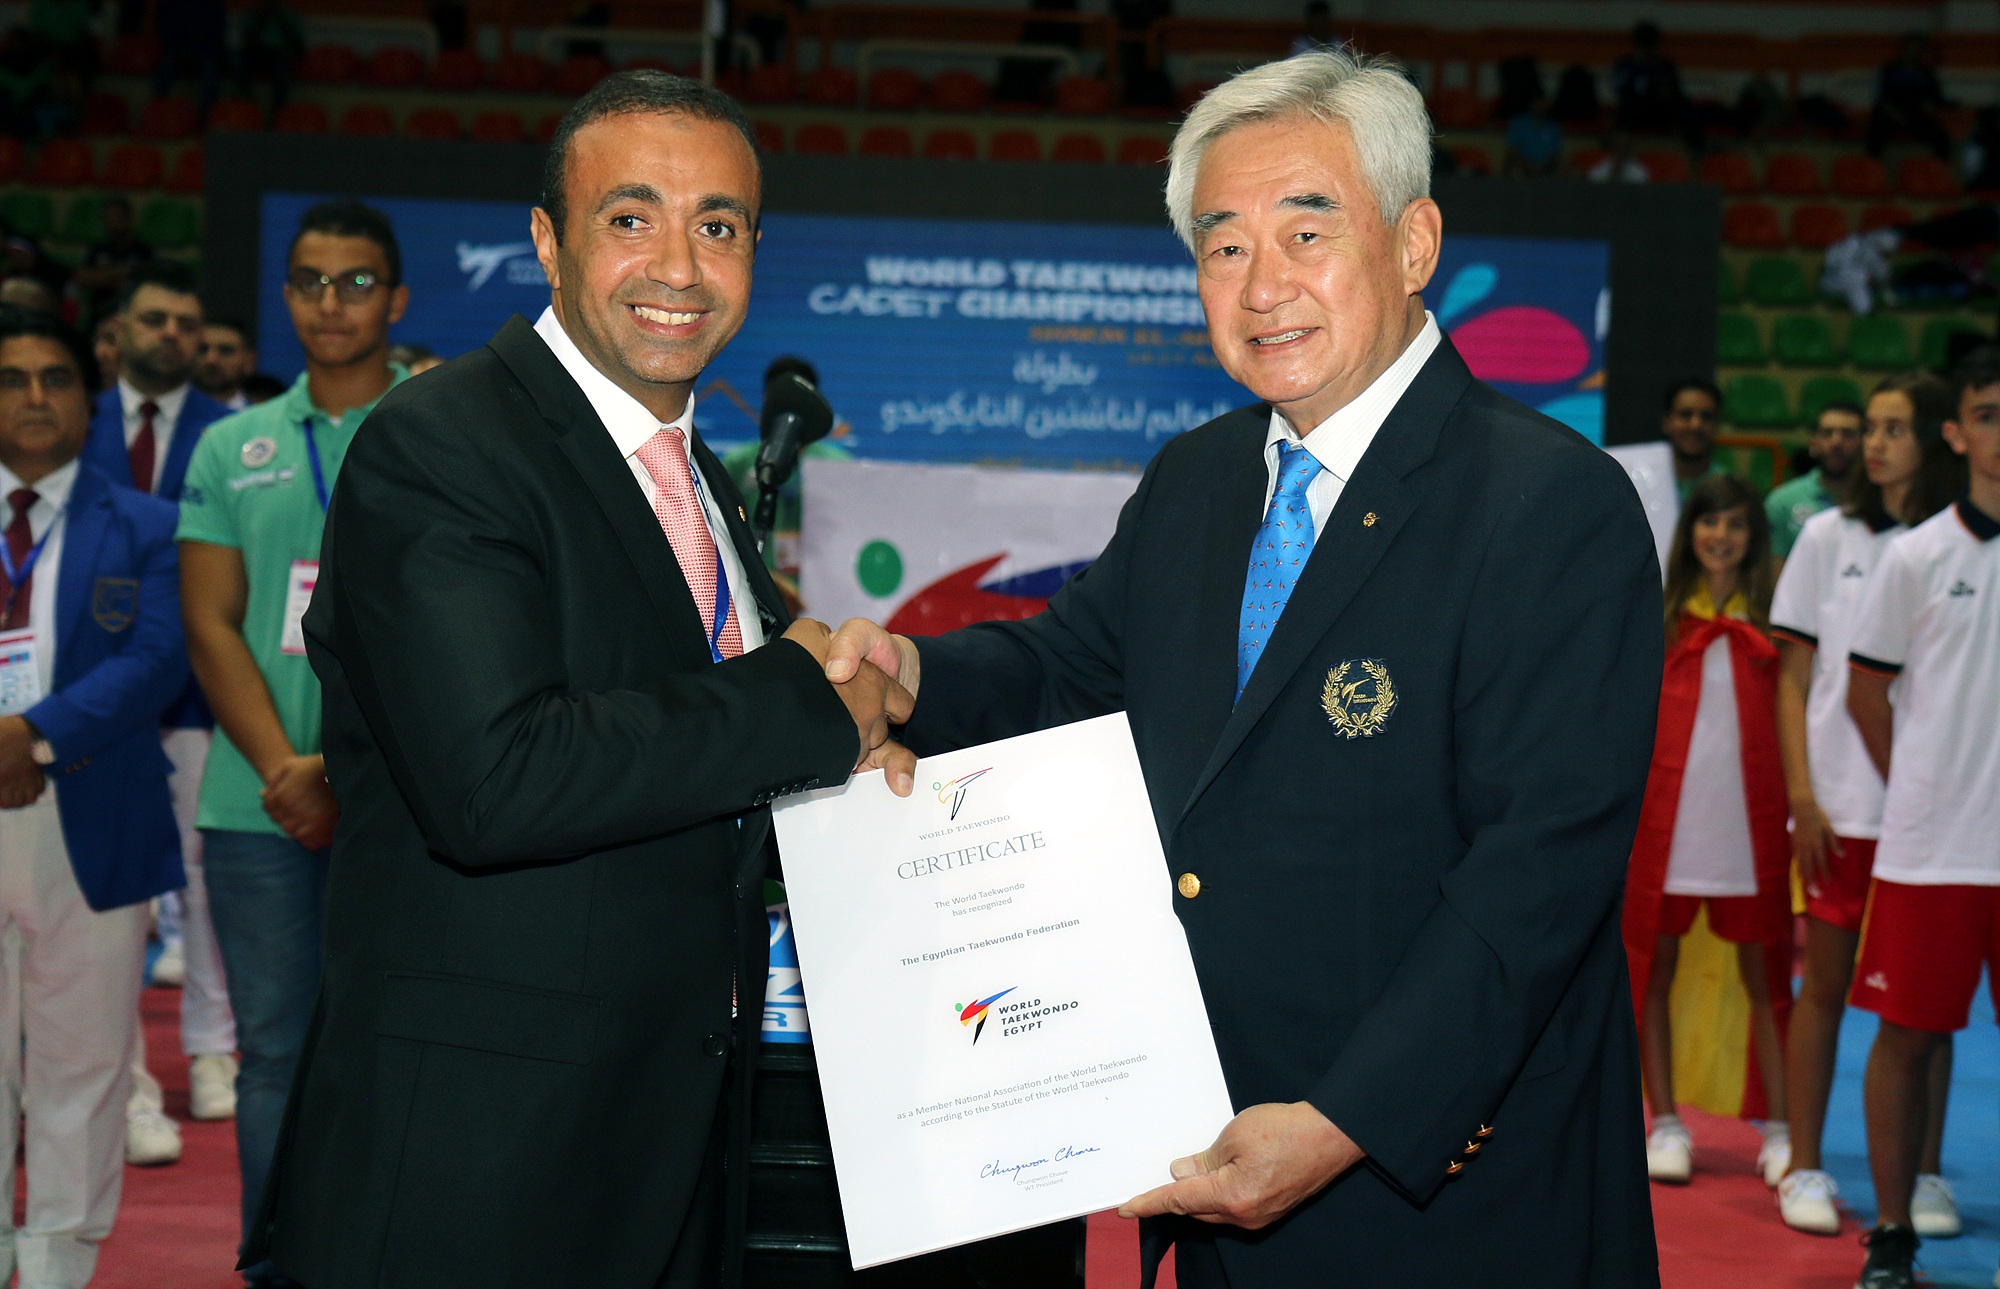 WT President Choue gives a certificate to ETF President Dr. Mohammed Ali